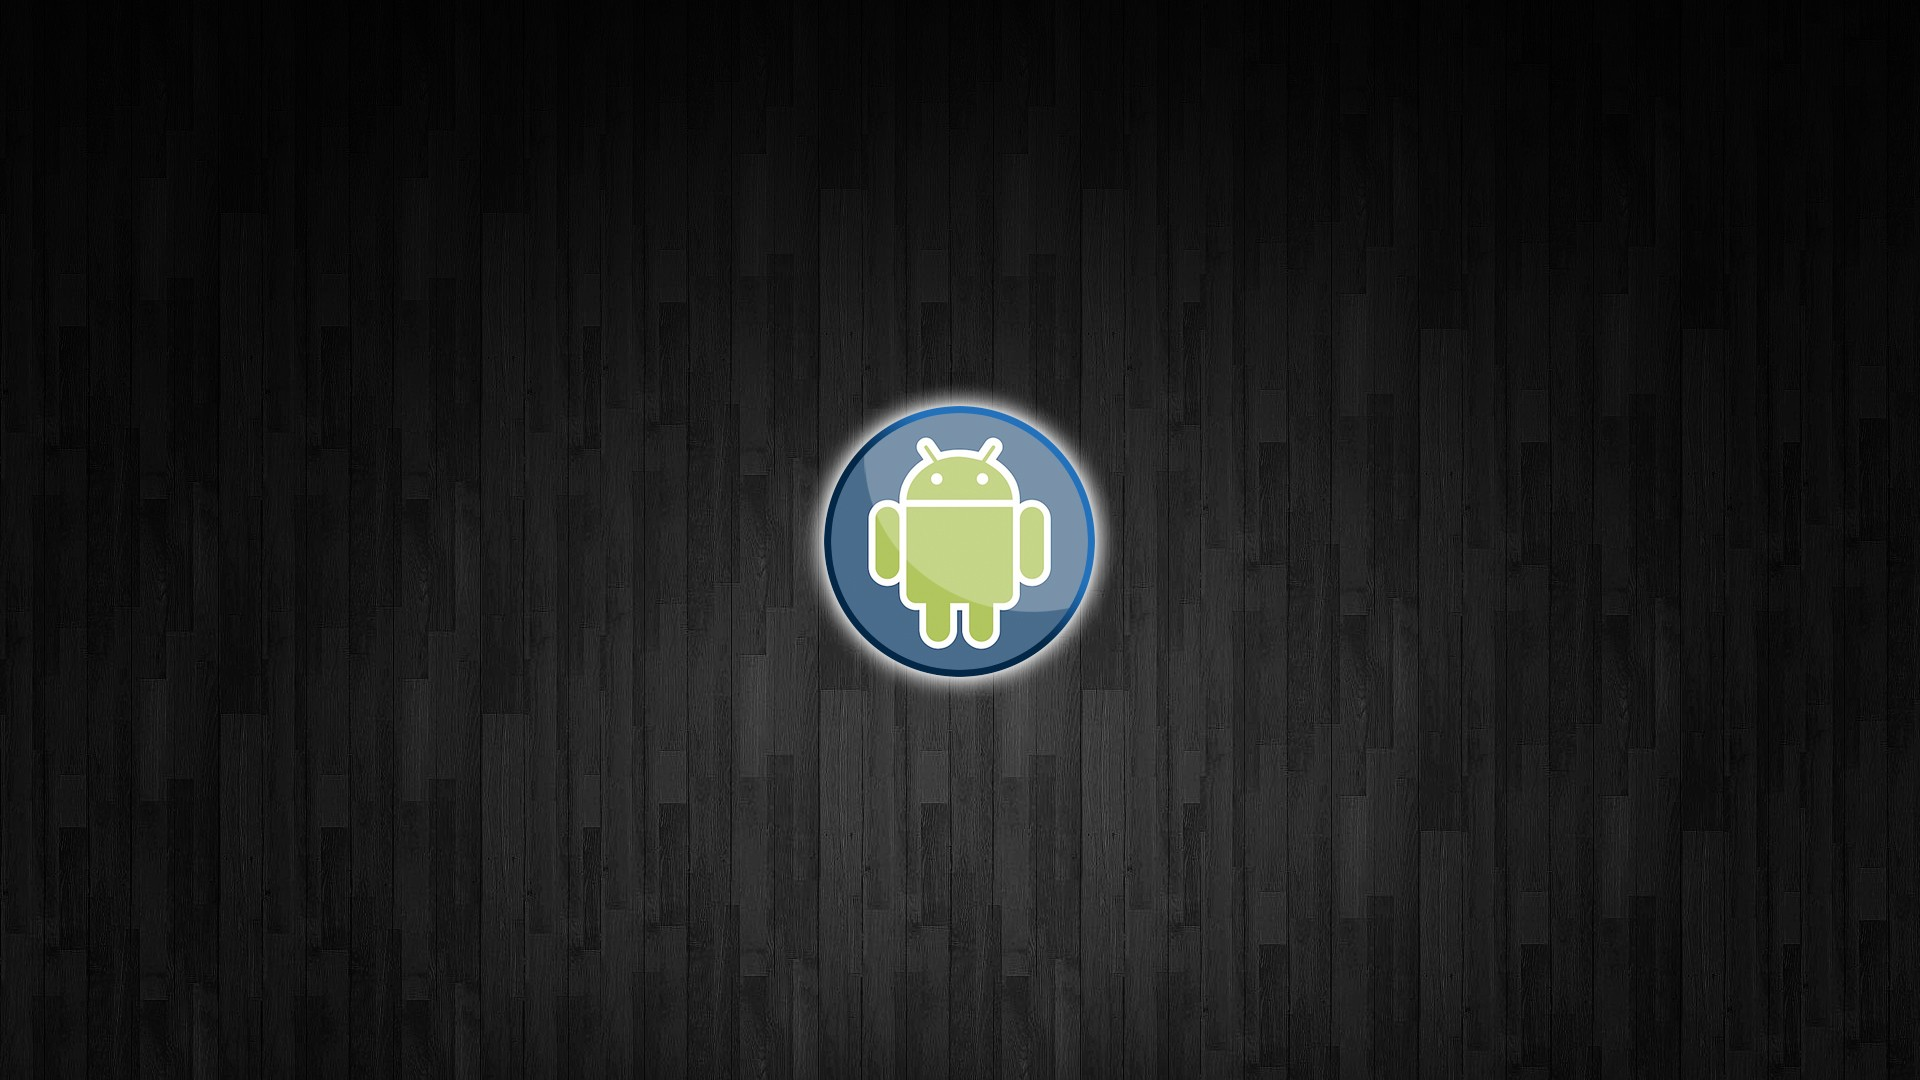 Android Background Wallpaper Page 1